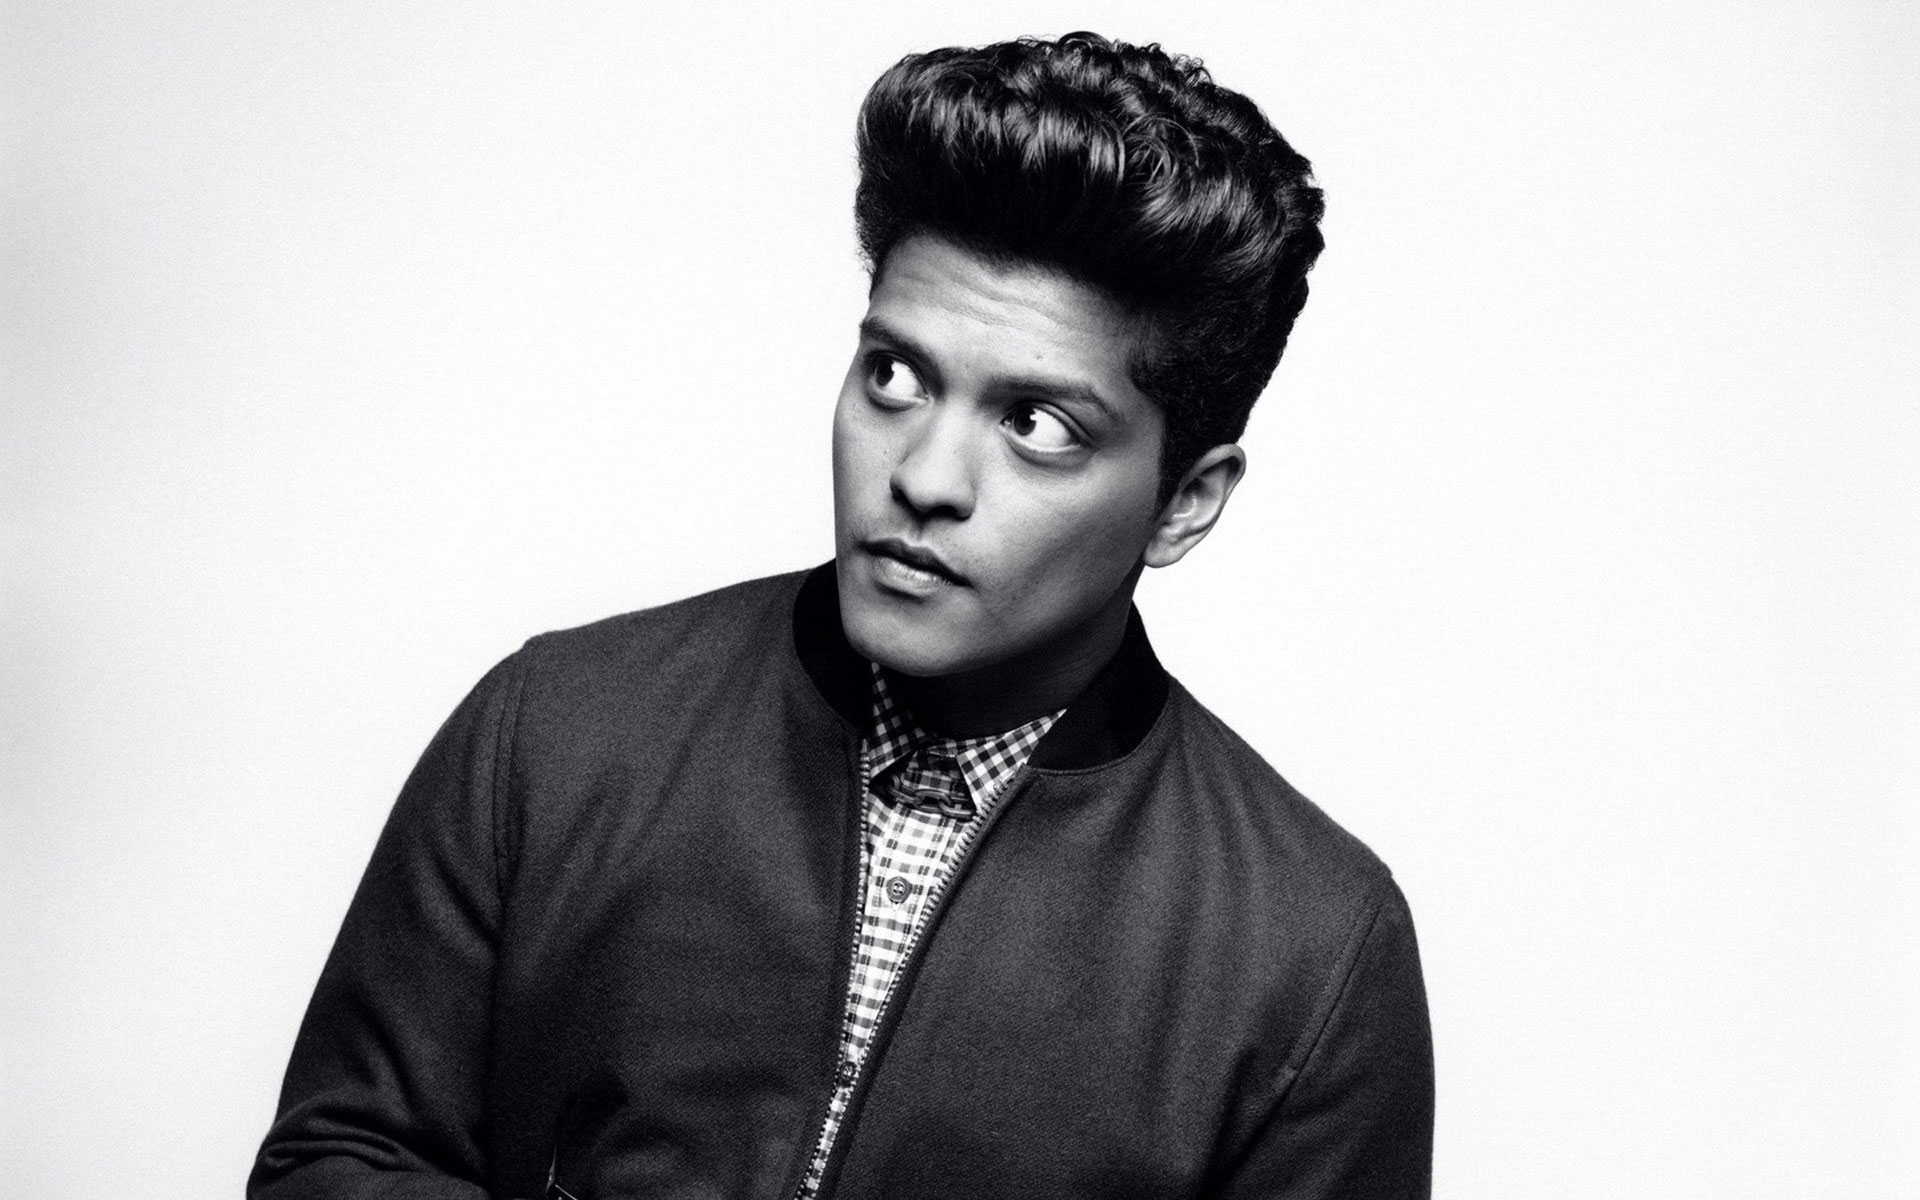 Bruno Mars Wallpaper Wallpapers High Quality